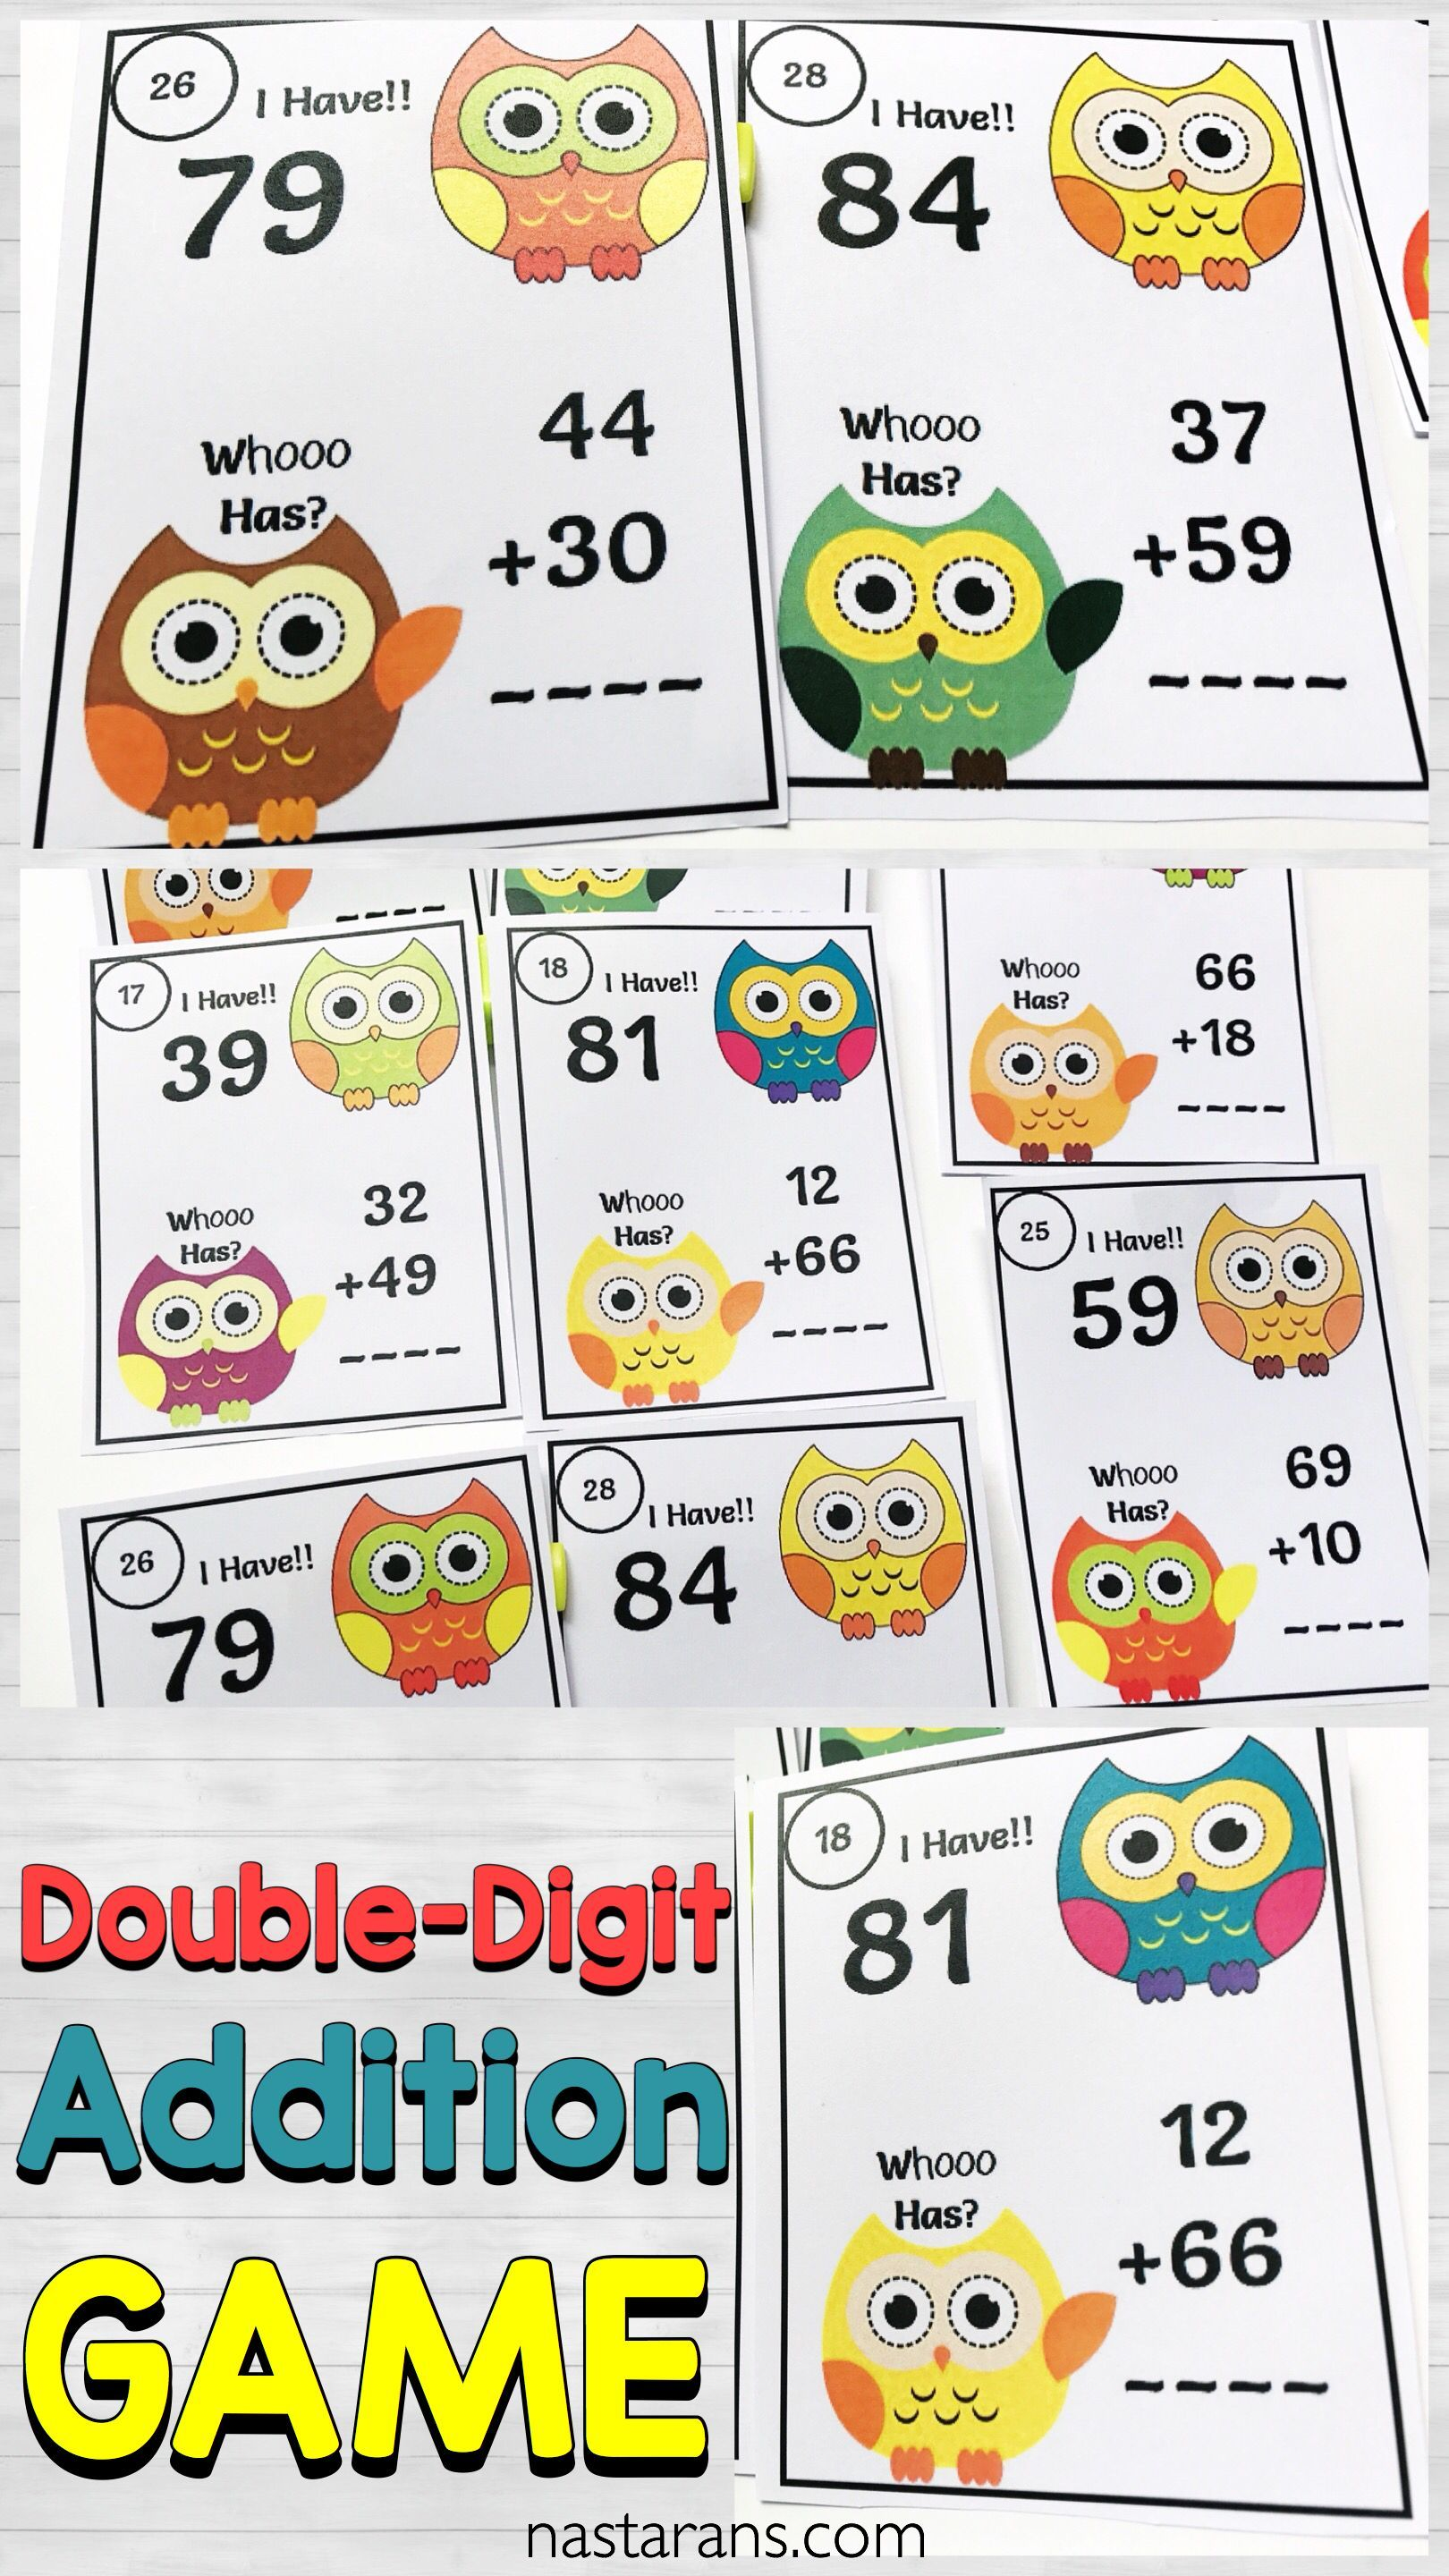 Double Digit Addition Game I Have Who Has In 2021 Double Digit Addition Addition Games Double Digit Addition Games Double digit addition games printable